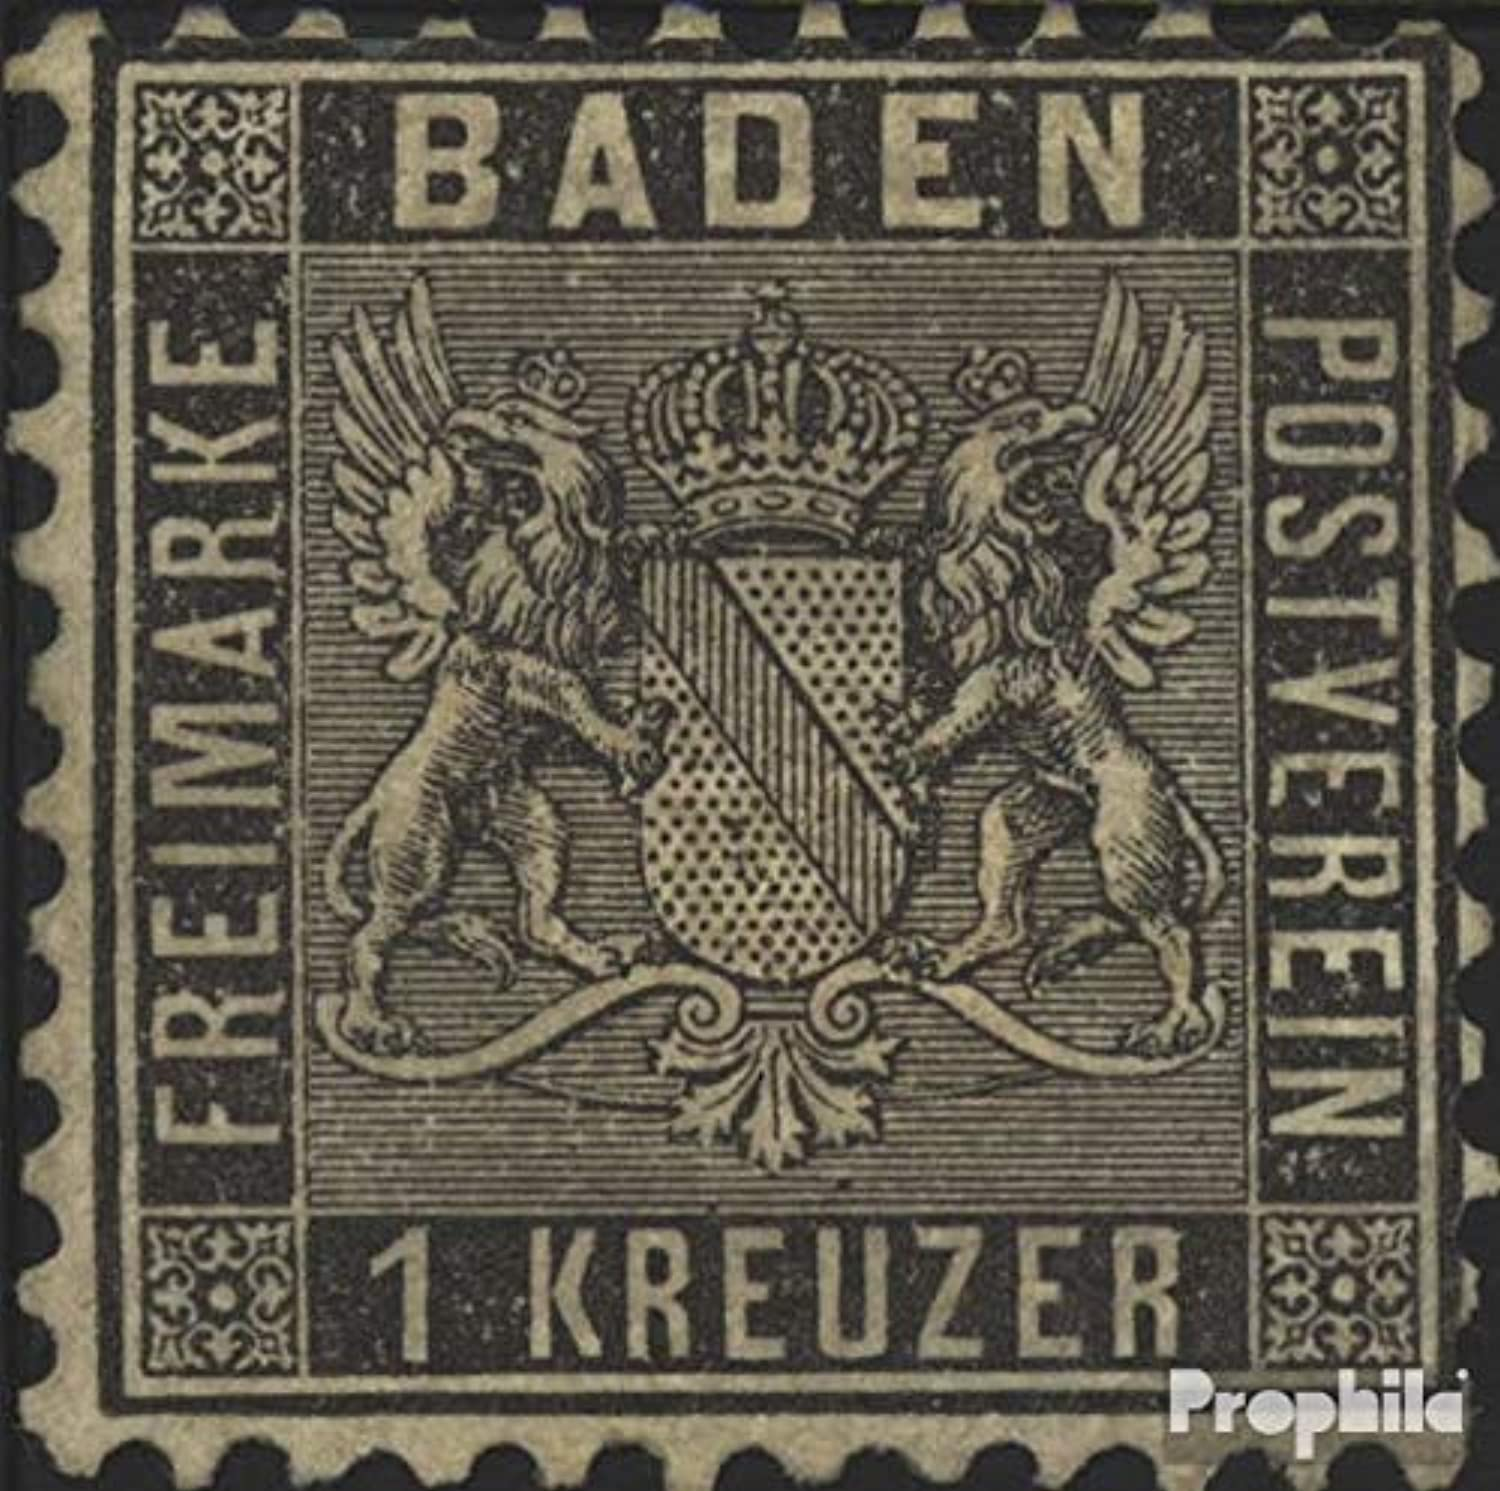 Baden 13a Fine (BQuality) 1860 Crest (Stamps for collectors)